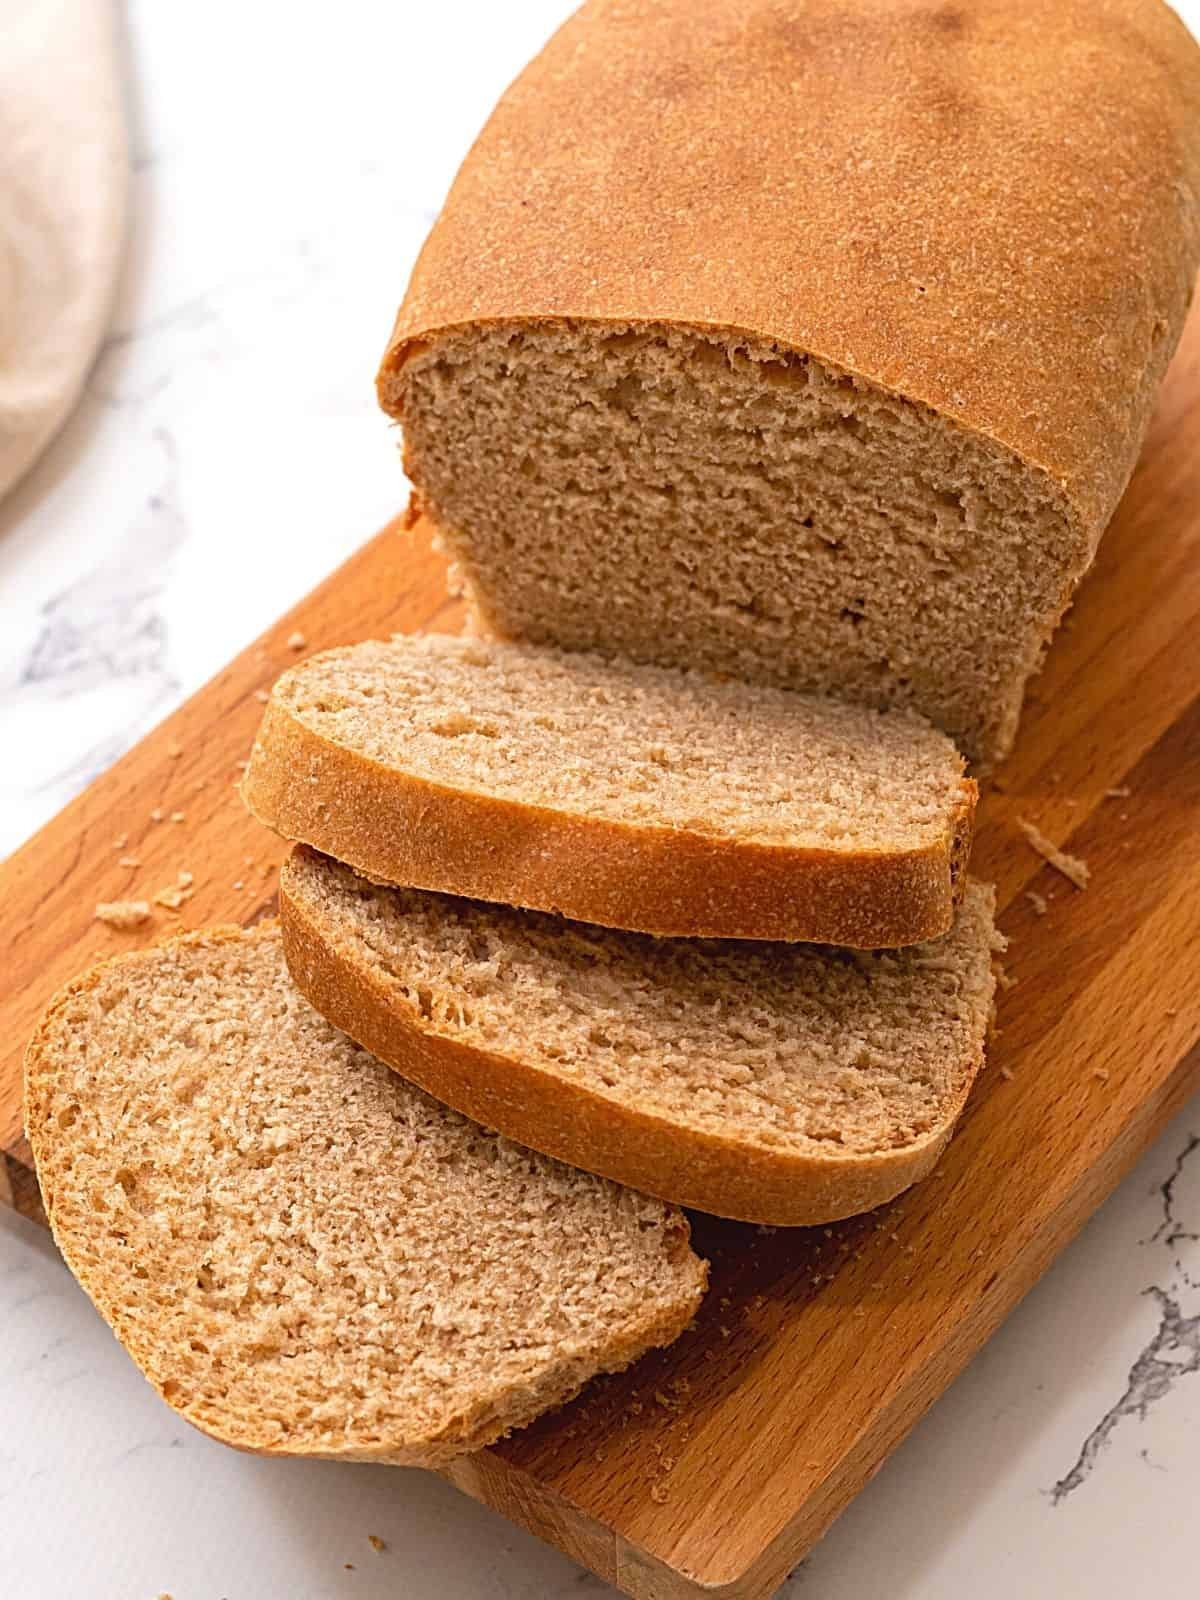 Loaf of whole wheat bread on cutting board with several slices cut.